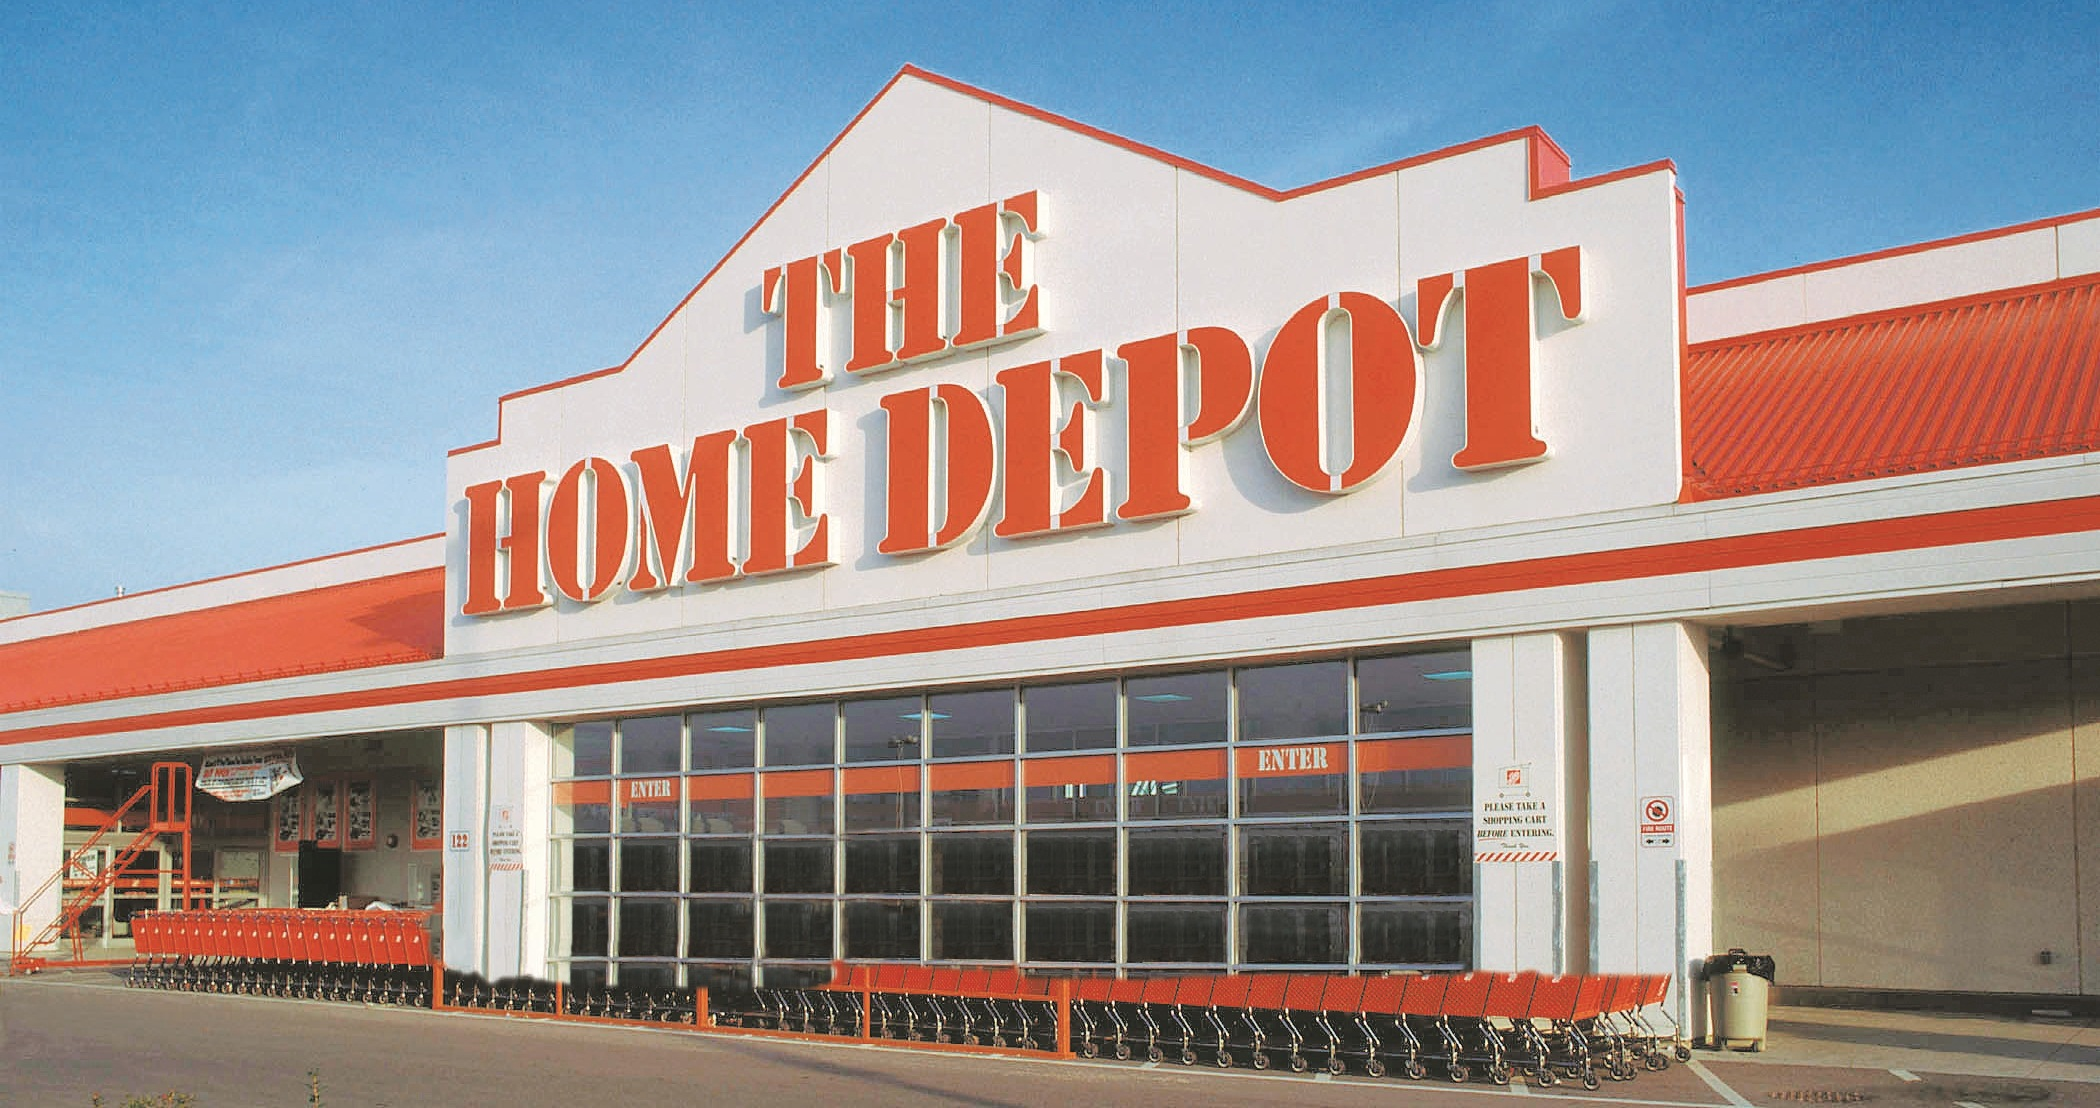 Marvelous Five Five Worst Things To Buy At Home Depot Home Depot Paint Services Insured By Ross Home Depot Colma Nursery Home Depot Colma Tree curbed Home Depot Colma